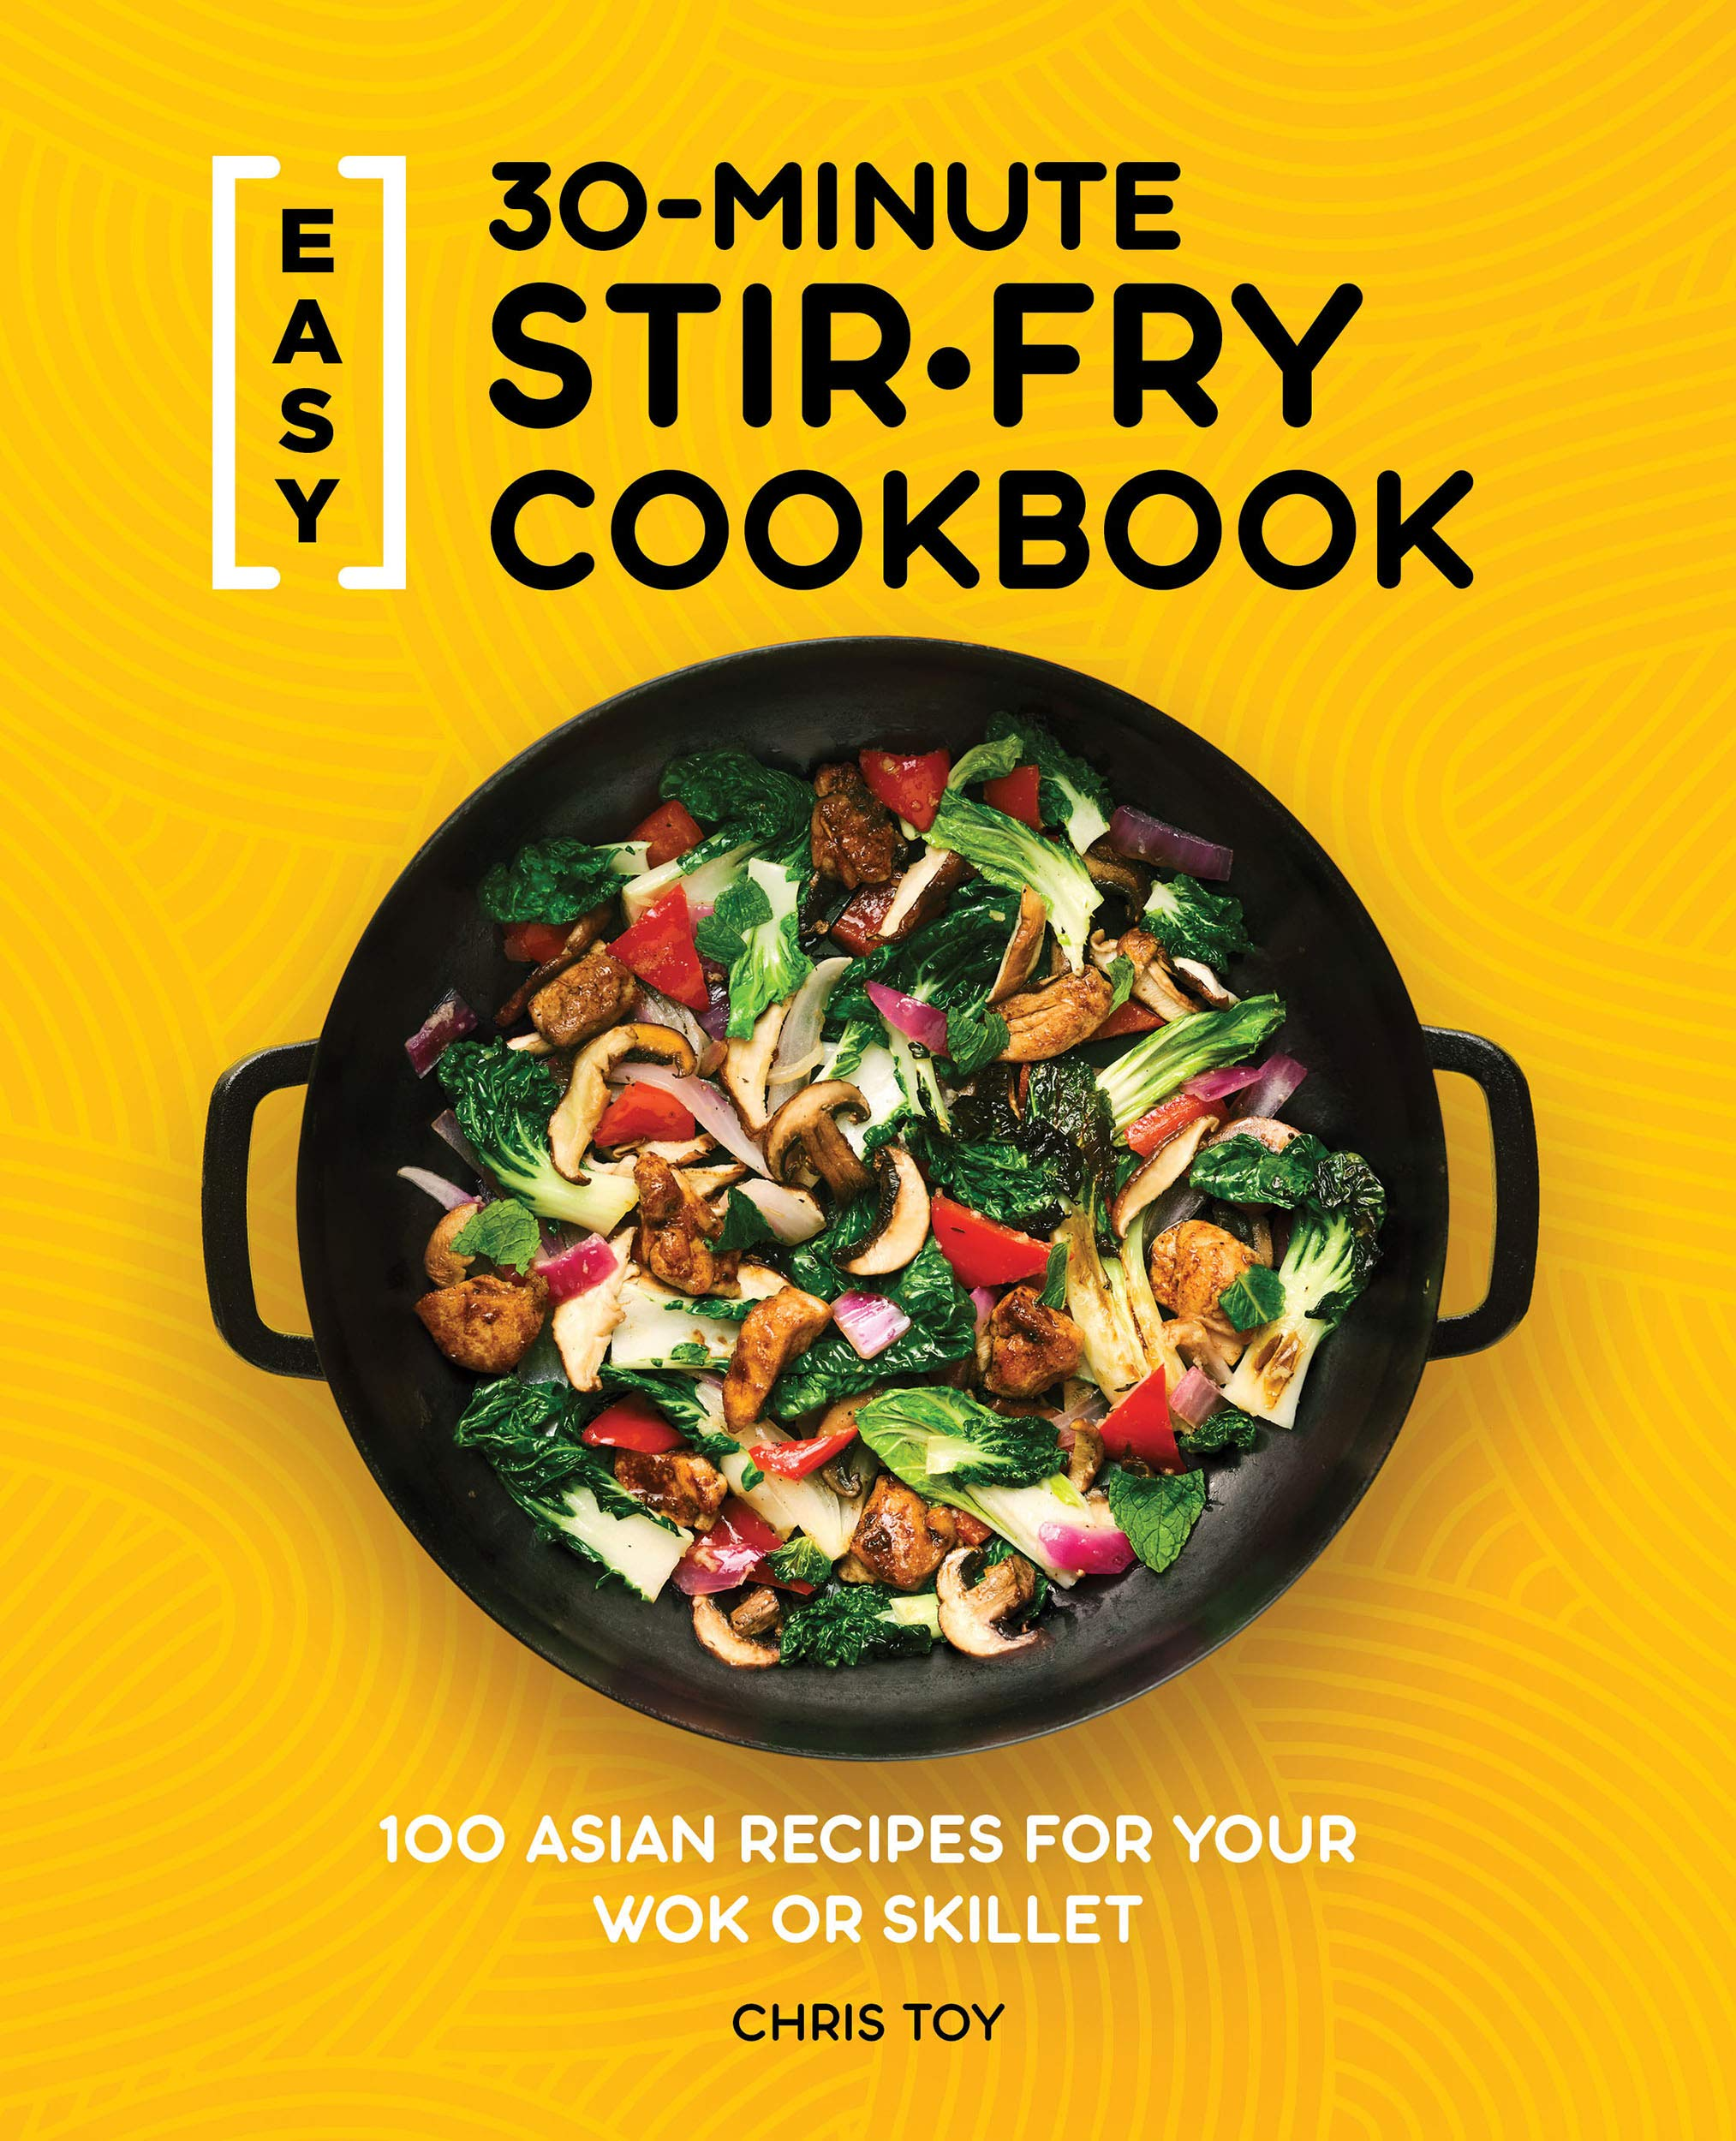 Easy 30 Minute Stir Fry Cookbook 100 Asian Recipes For Your Wok Or Skillet Toy Chris 9781647397807 Amazon Com Books